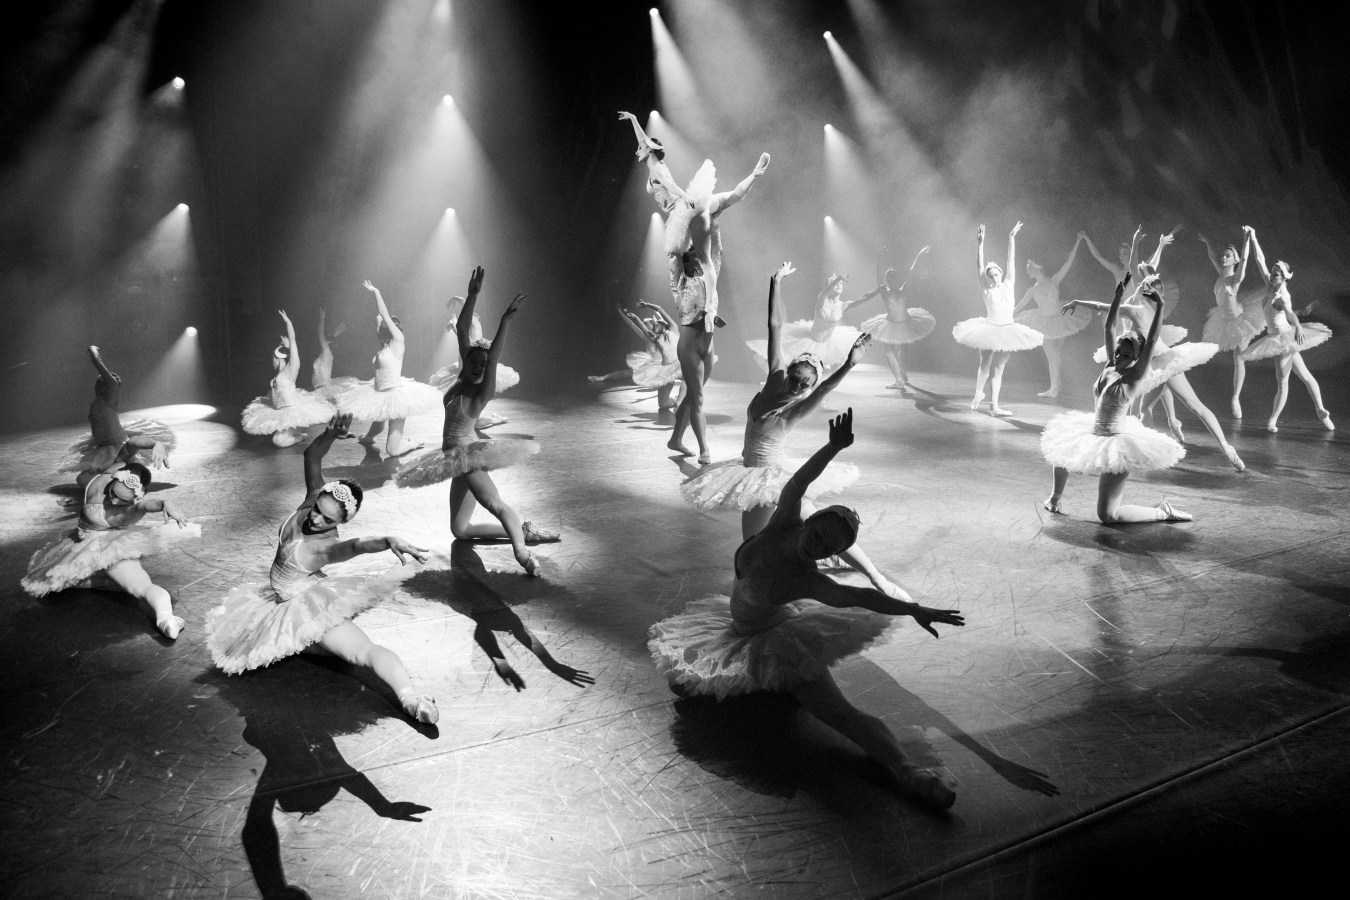 """The 2015 version of Swan Lake at the Opera House Main Stage was a total rework by artistic director Nikolaj Hübbe and deputy director Silja Schandorff. They used all dancers in the corpse, and even had to hire dancers from outside Denmark to fill the huge stage. The show was praised for its cinematic interpretation """"in a futuristic setting that bring to mind not only classic fairy tales but also sci-fi, Star Wars and even rock shows."""""""